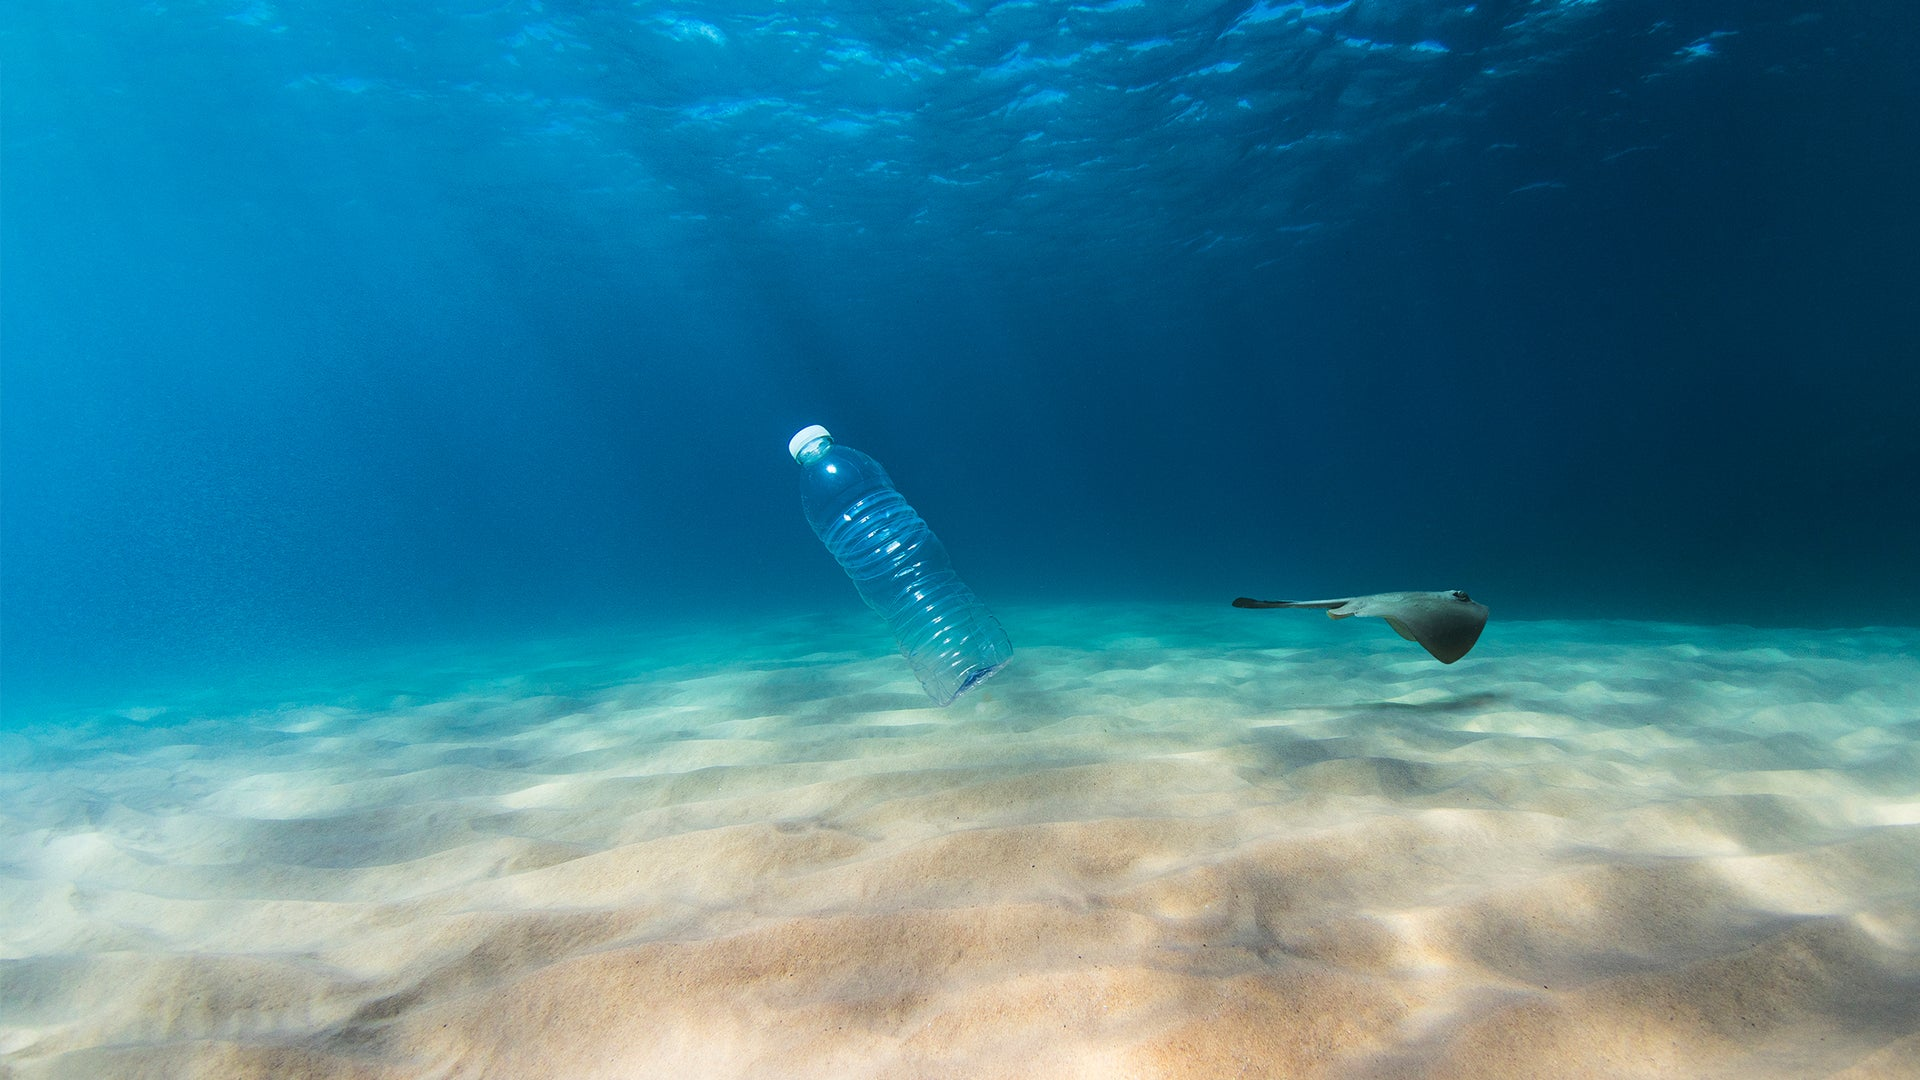 Our Oceans are Drowning in Plastic